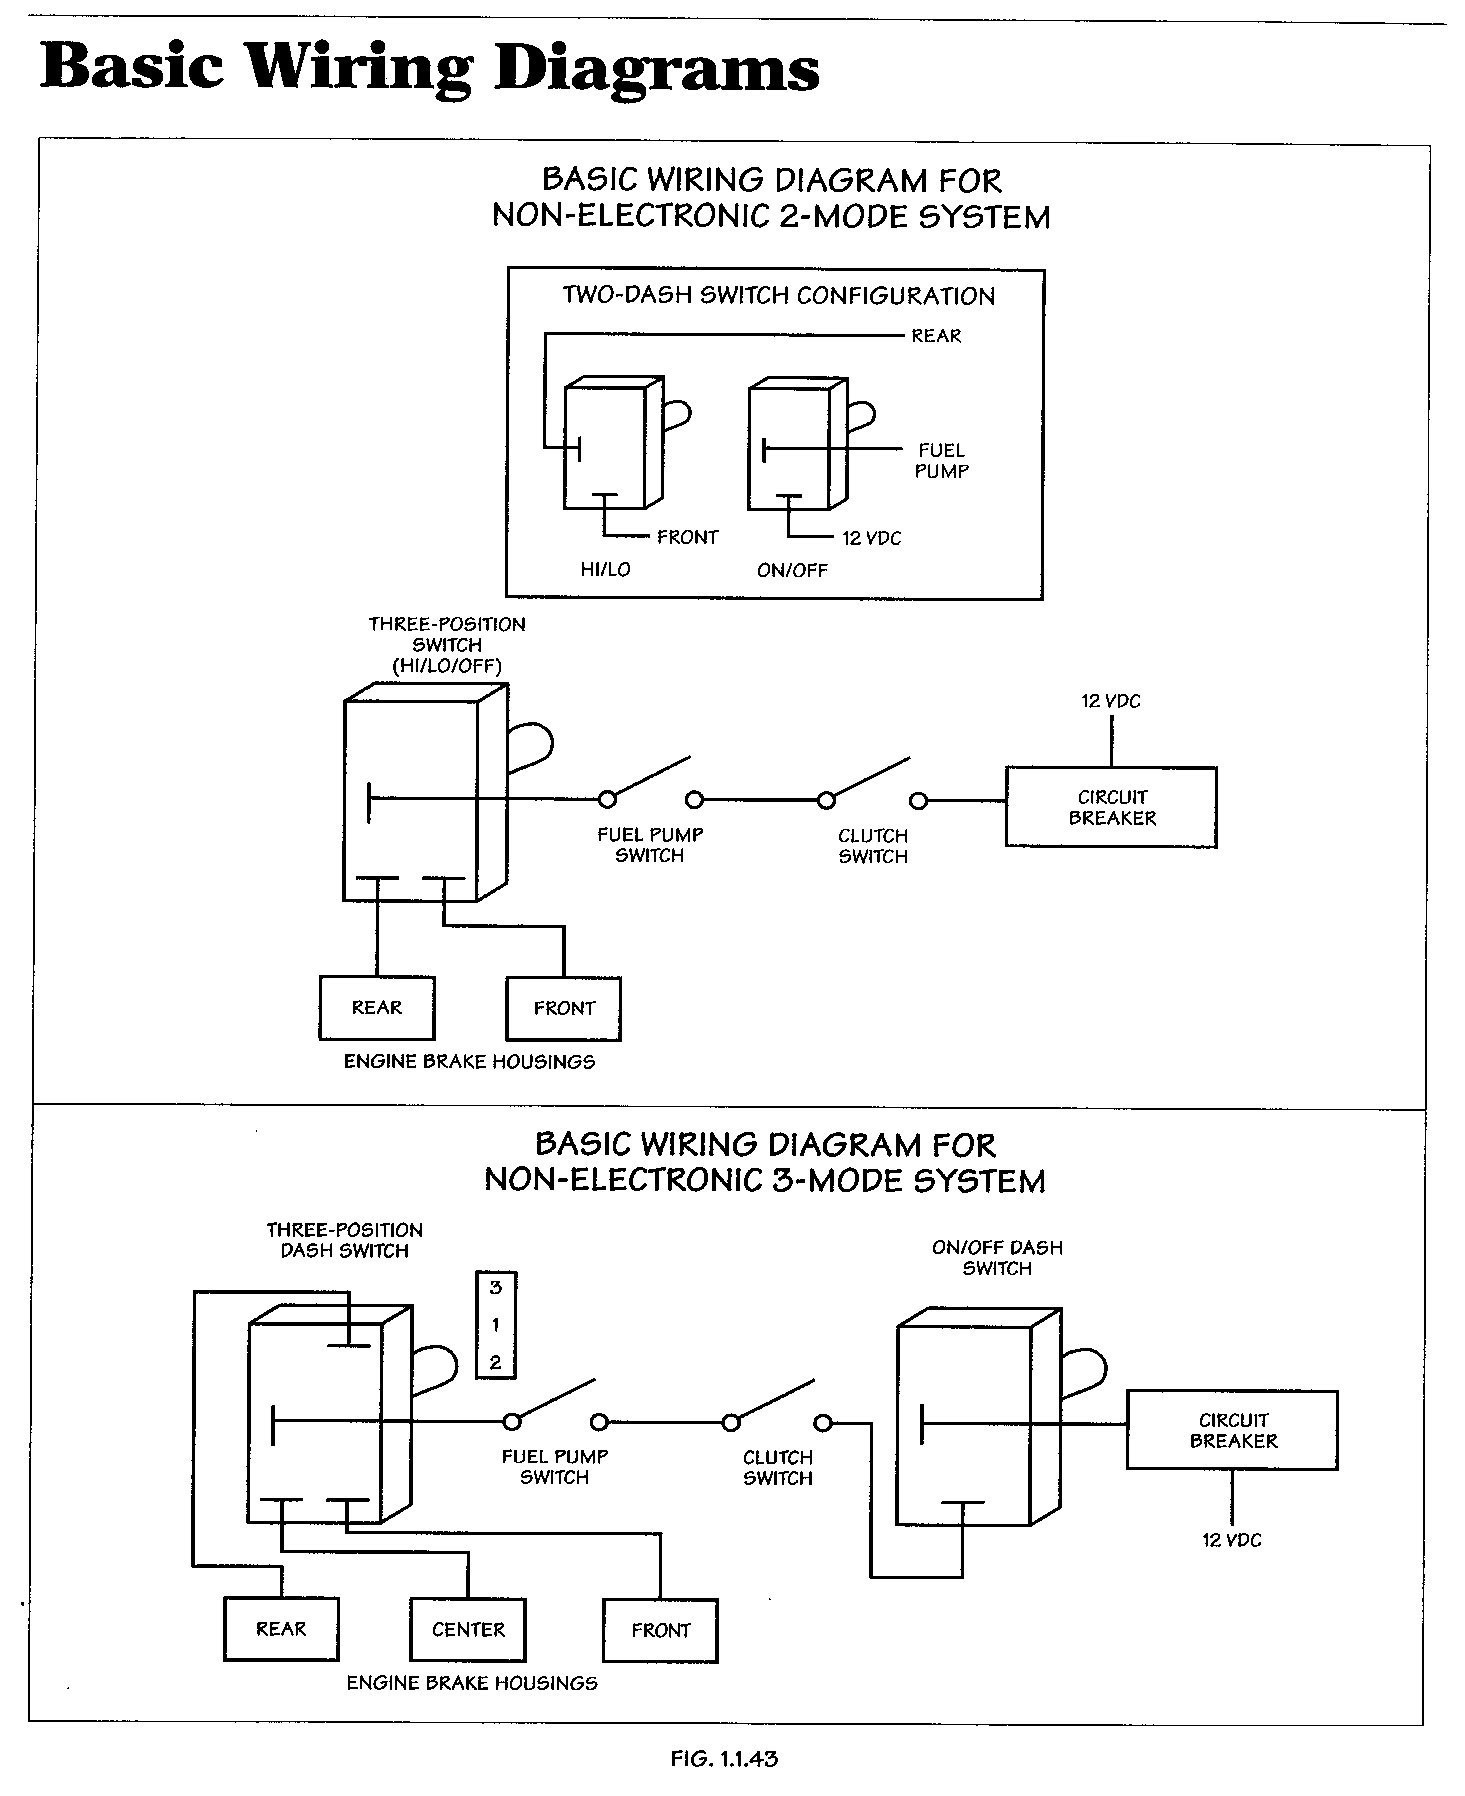 1999 mack truck wiring diagram | wiring diagram mack truck alternator wiring diagram